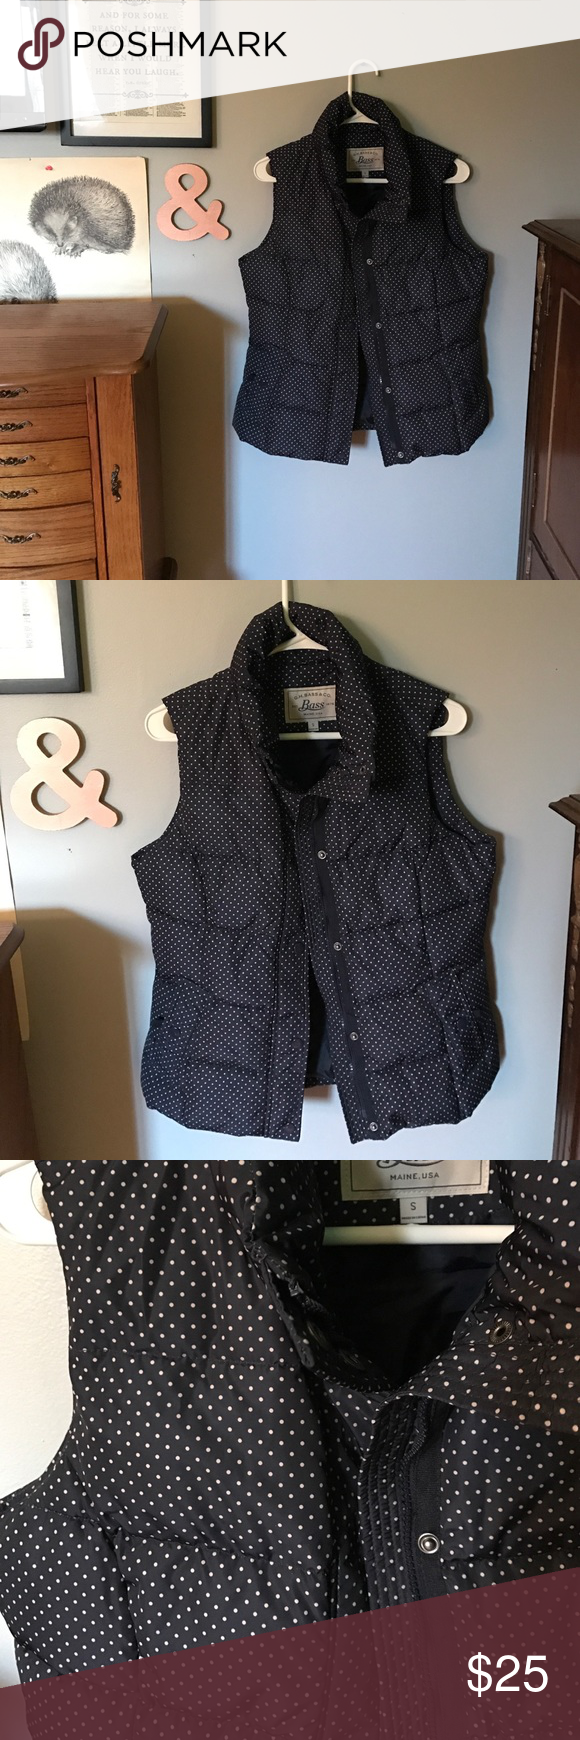 Navy Pin-Dot Vest Navy and tan pin-dot puffer vest. Very warm and cute! Bass Jackets & Coats Vests